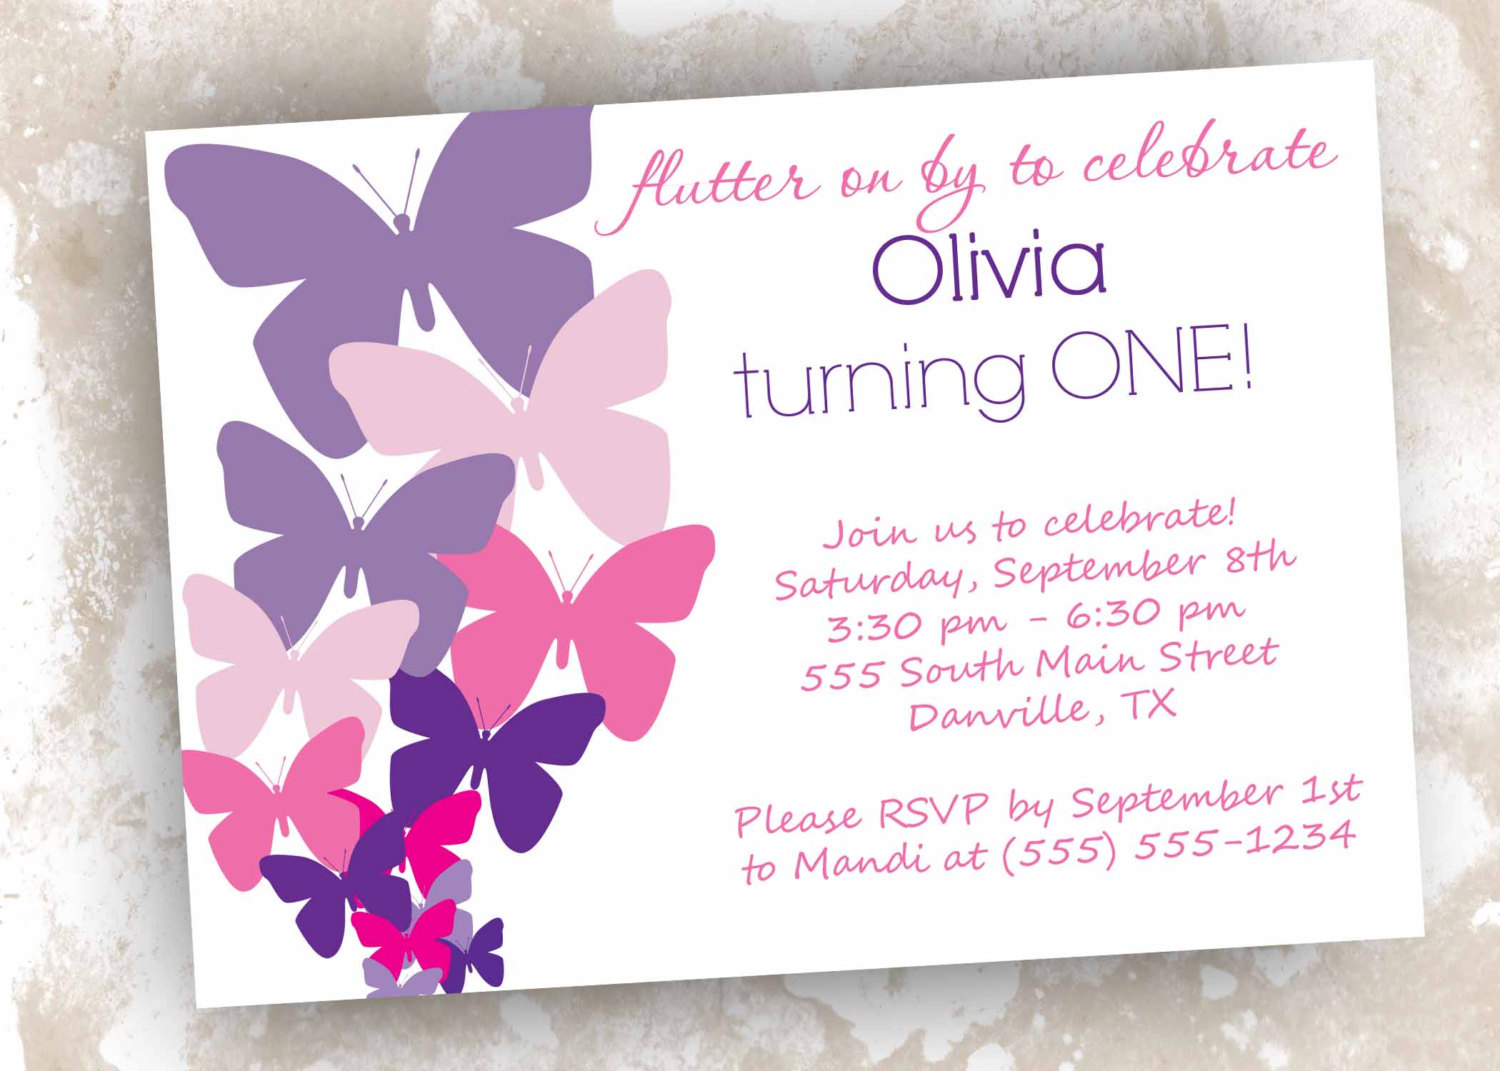 butterfly birthday invitations ; butterfly-birthday-invitations-and-the-extraordinary-Birthday-Invitation-is-very-simple-2